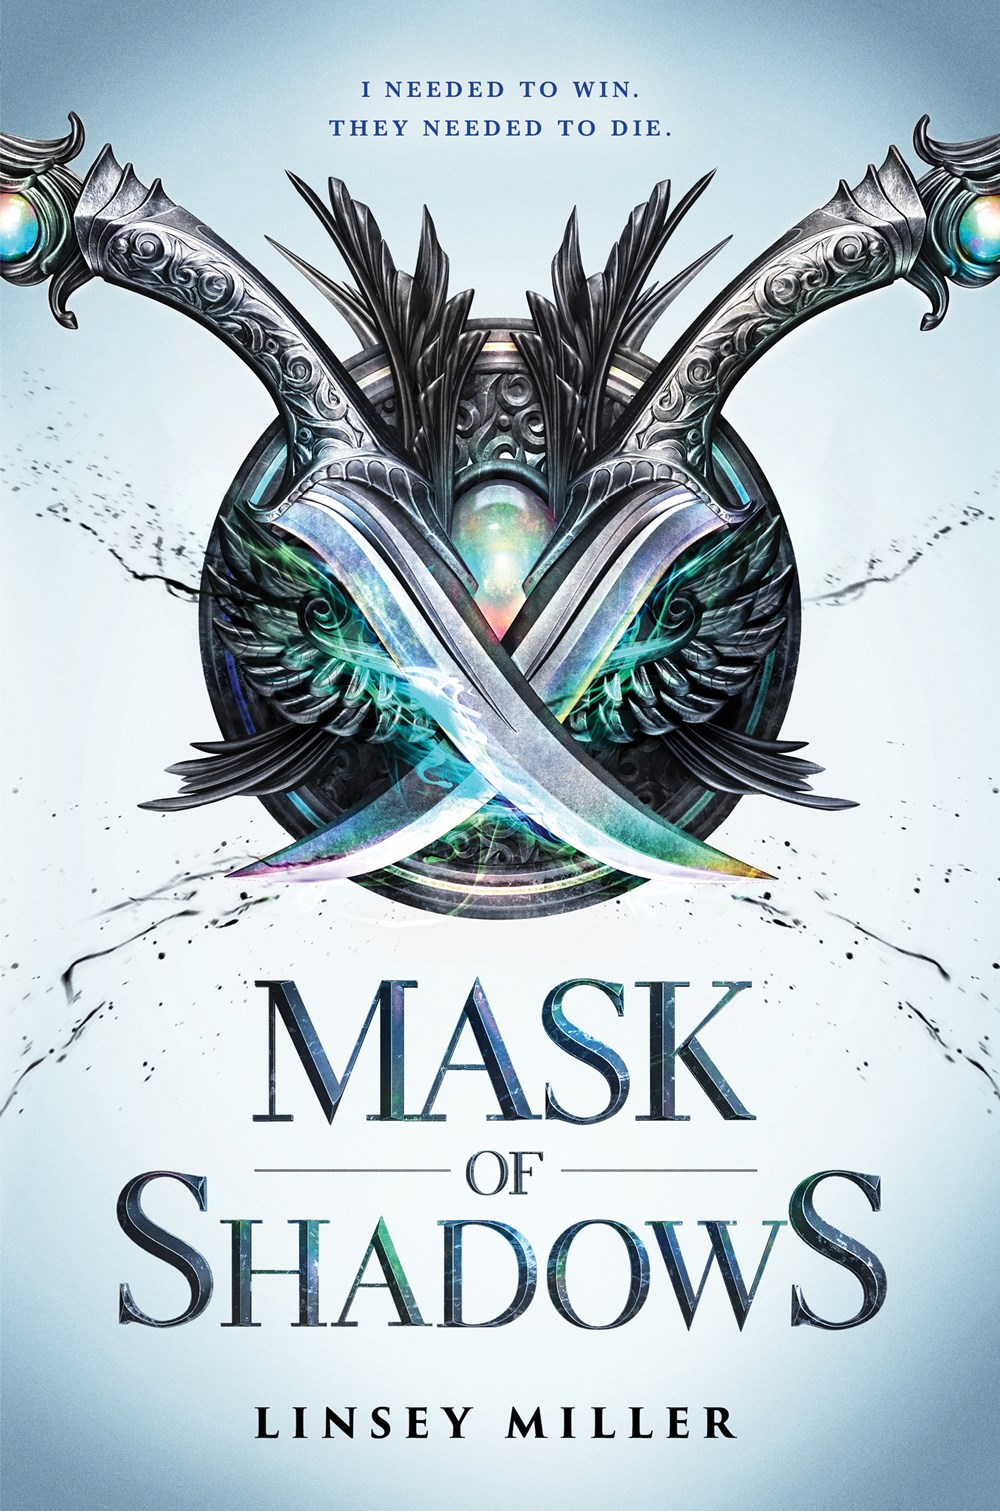 Mask of Shadows Linsey Miller